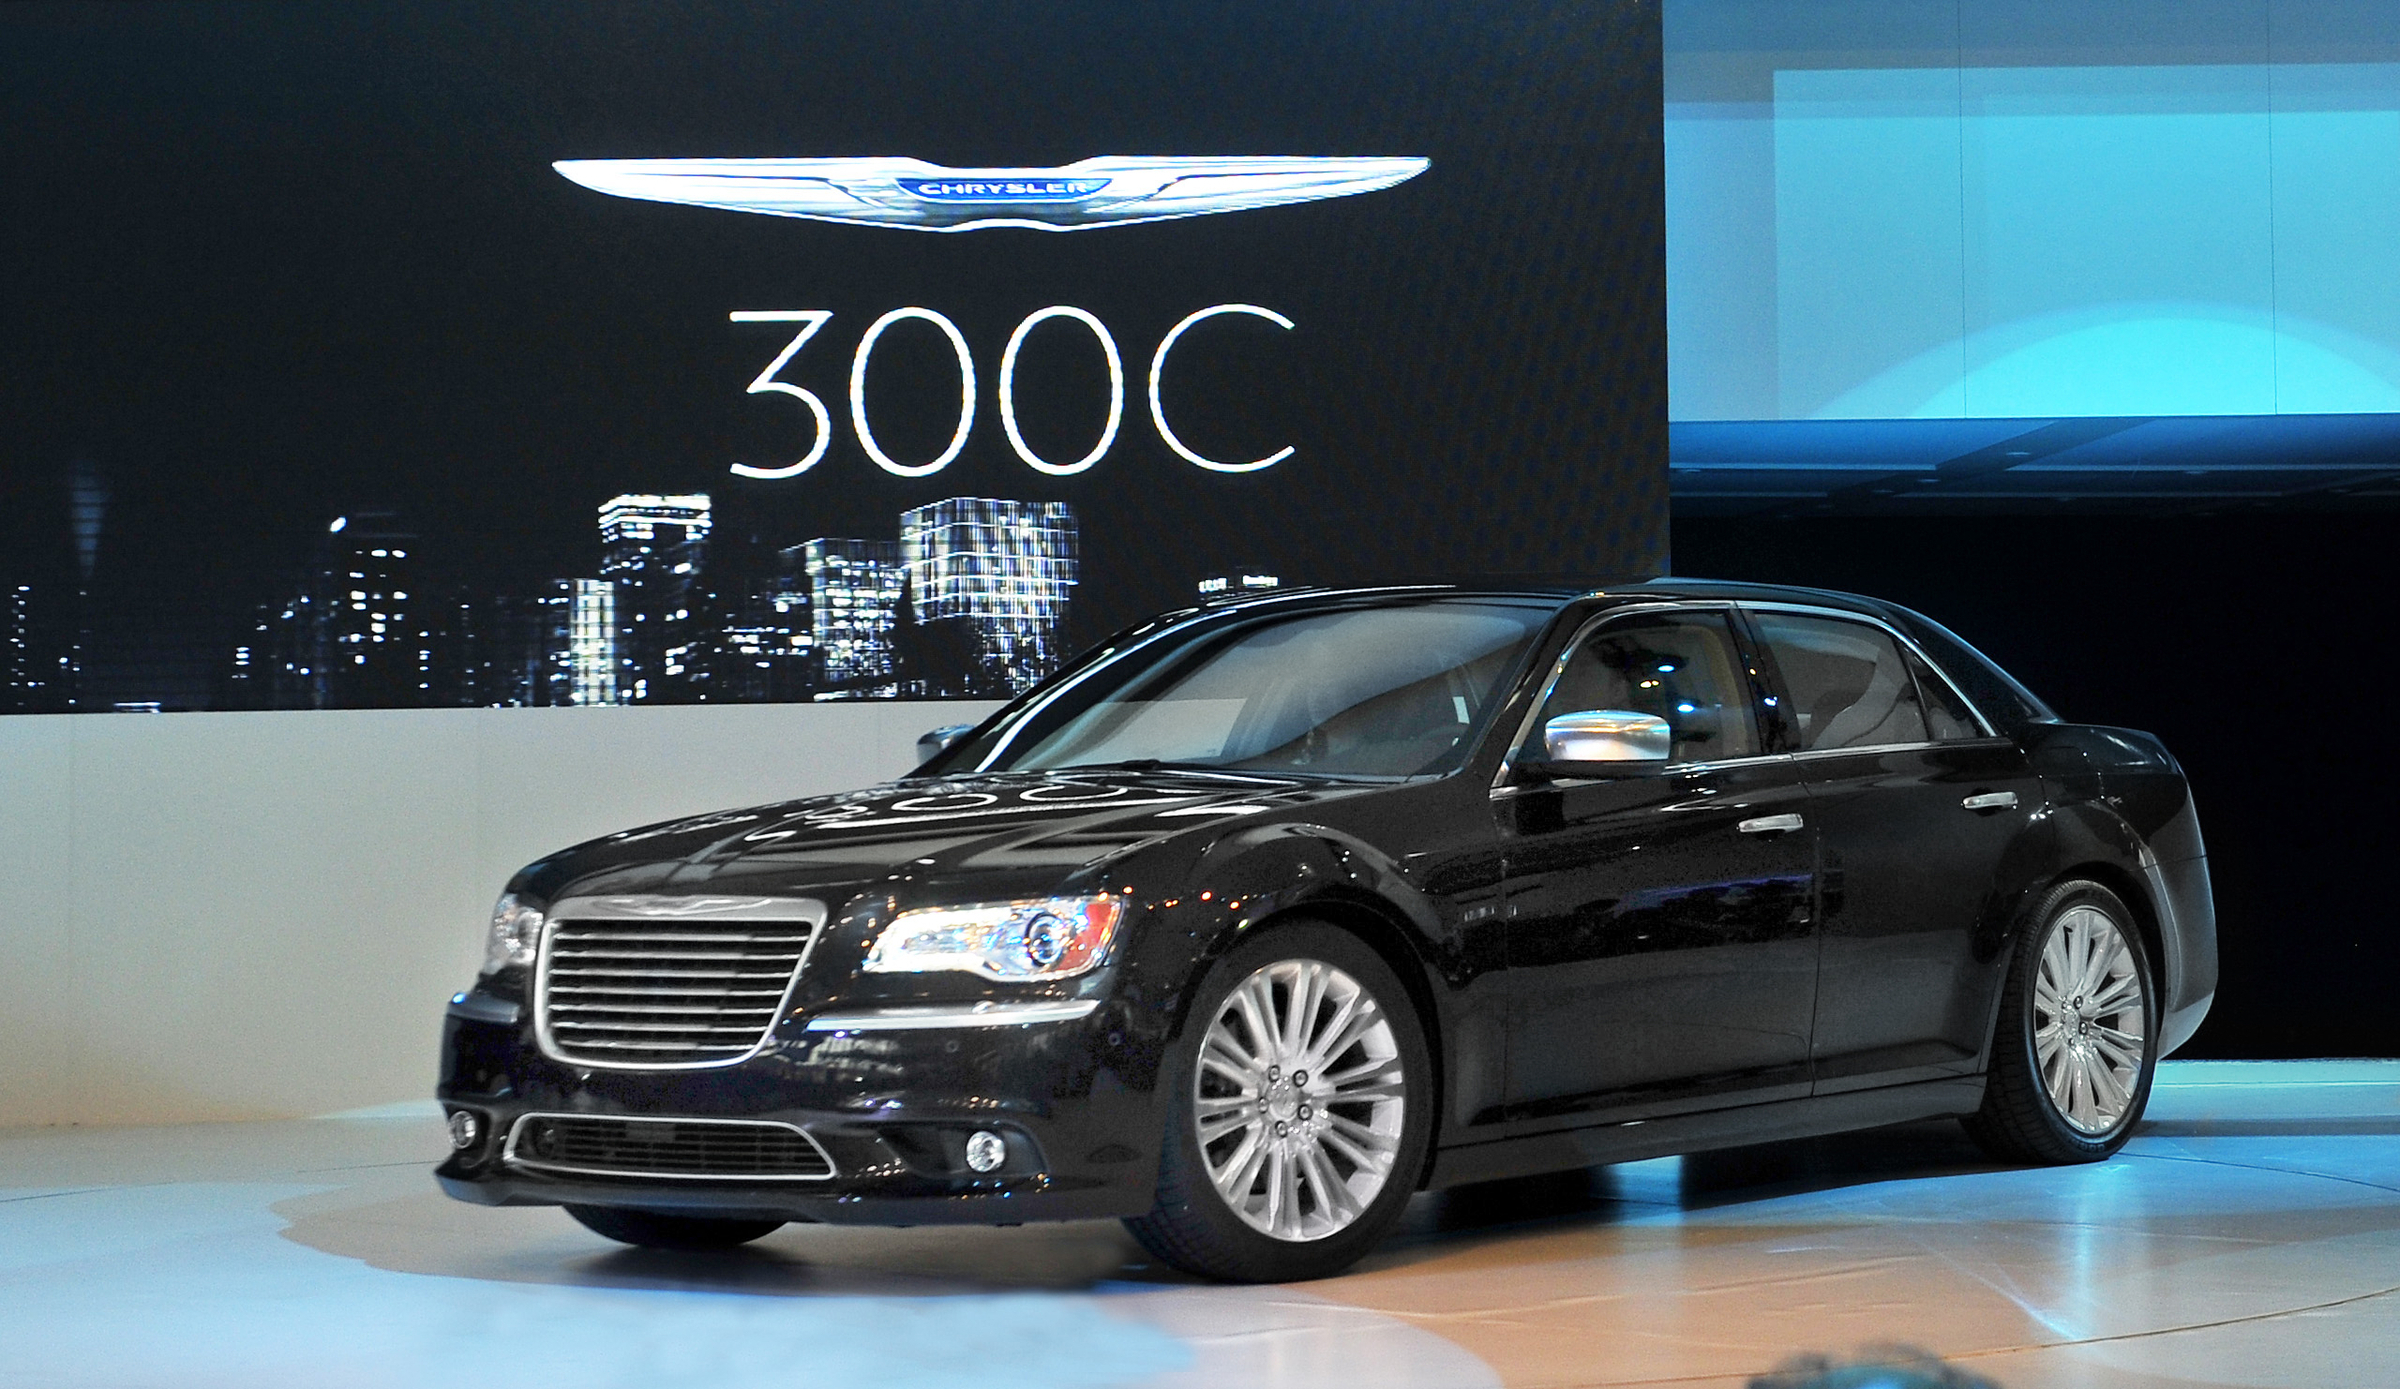 2012 chrysler 300 information and photos zombiedrive. Black Bedroom Furniture Sets. Home Design Ideas